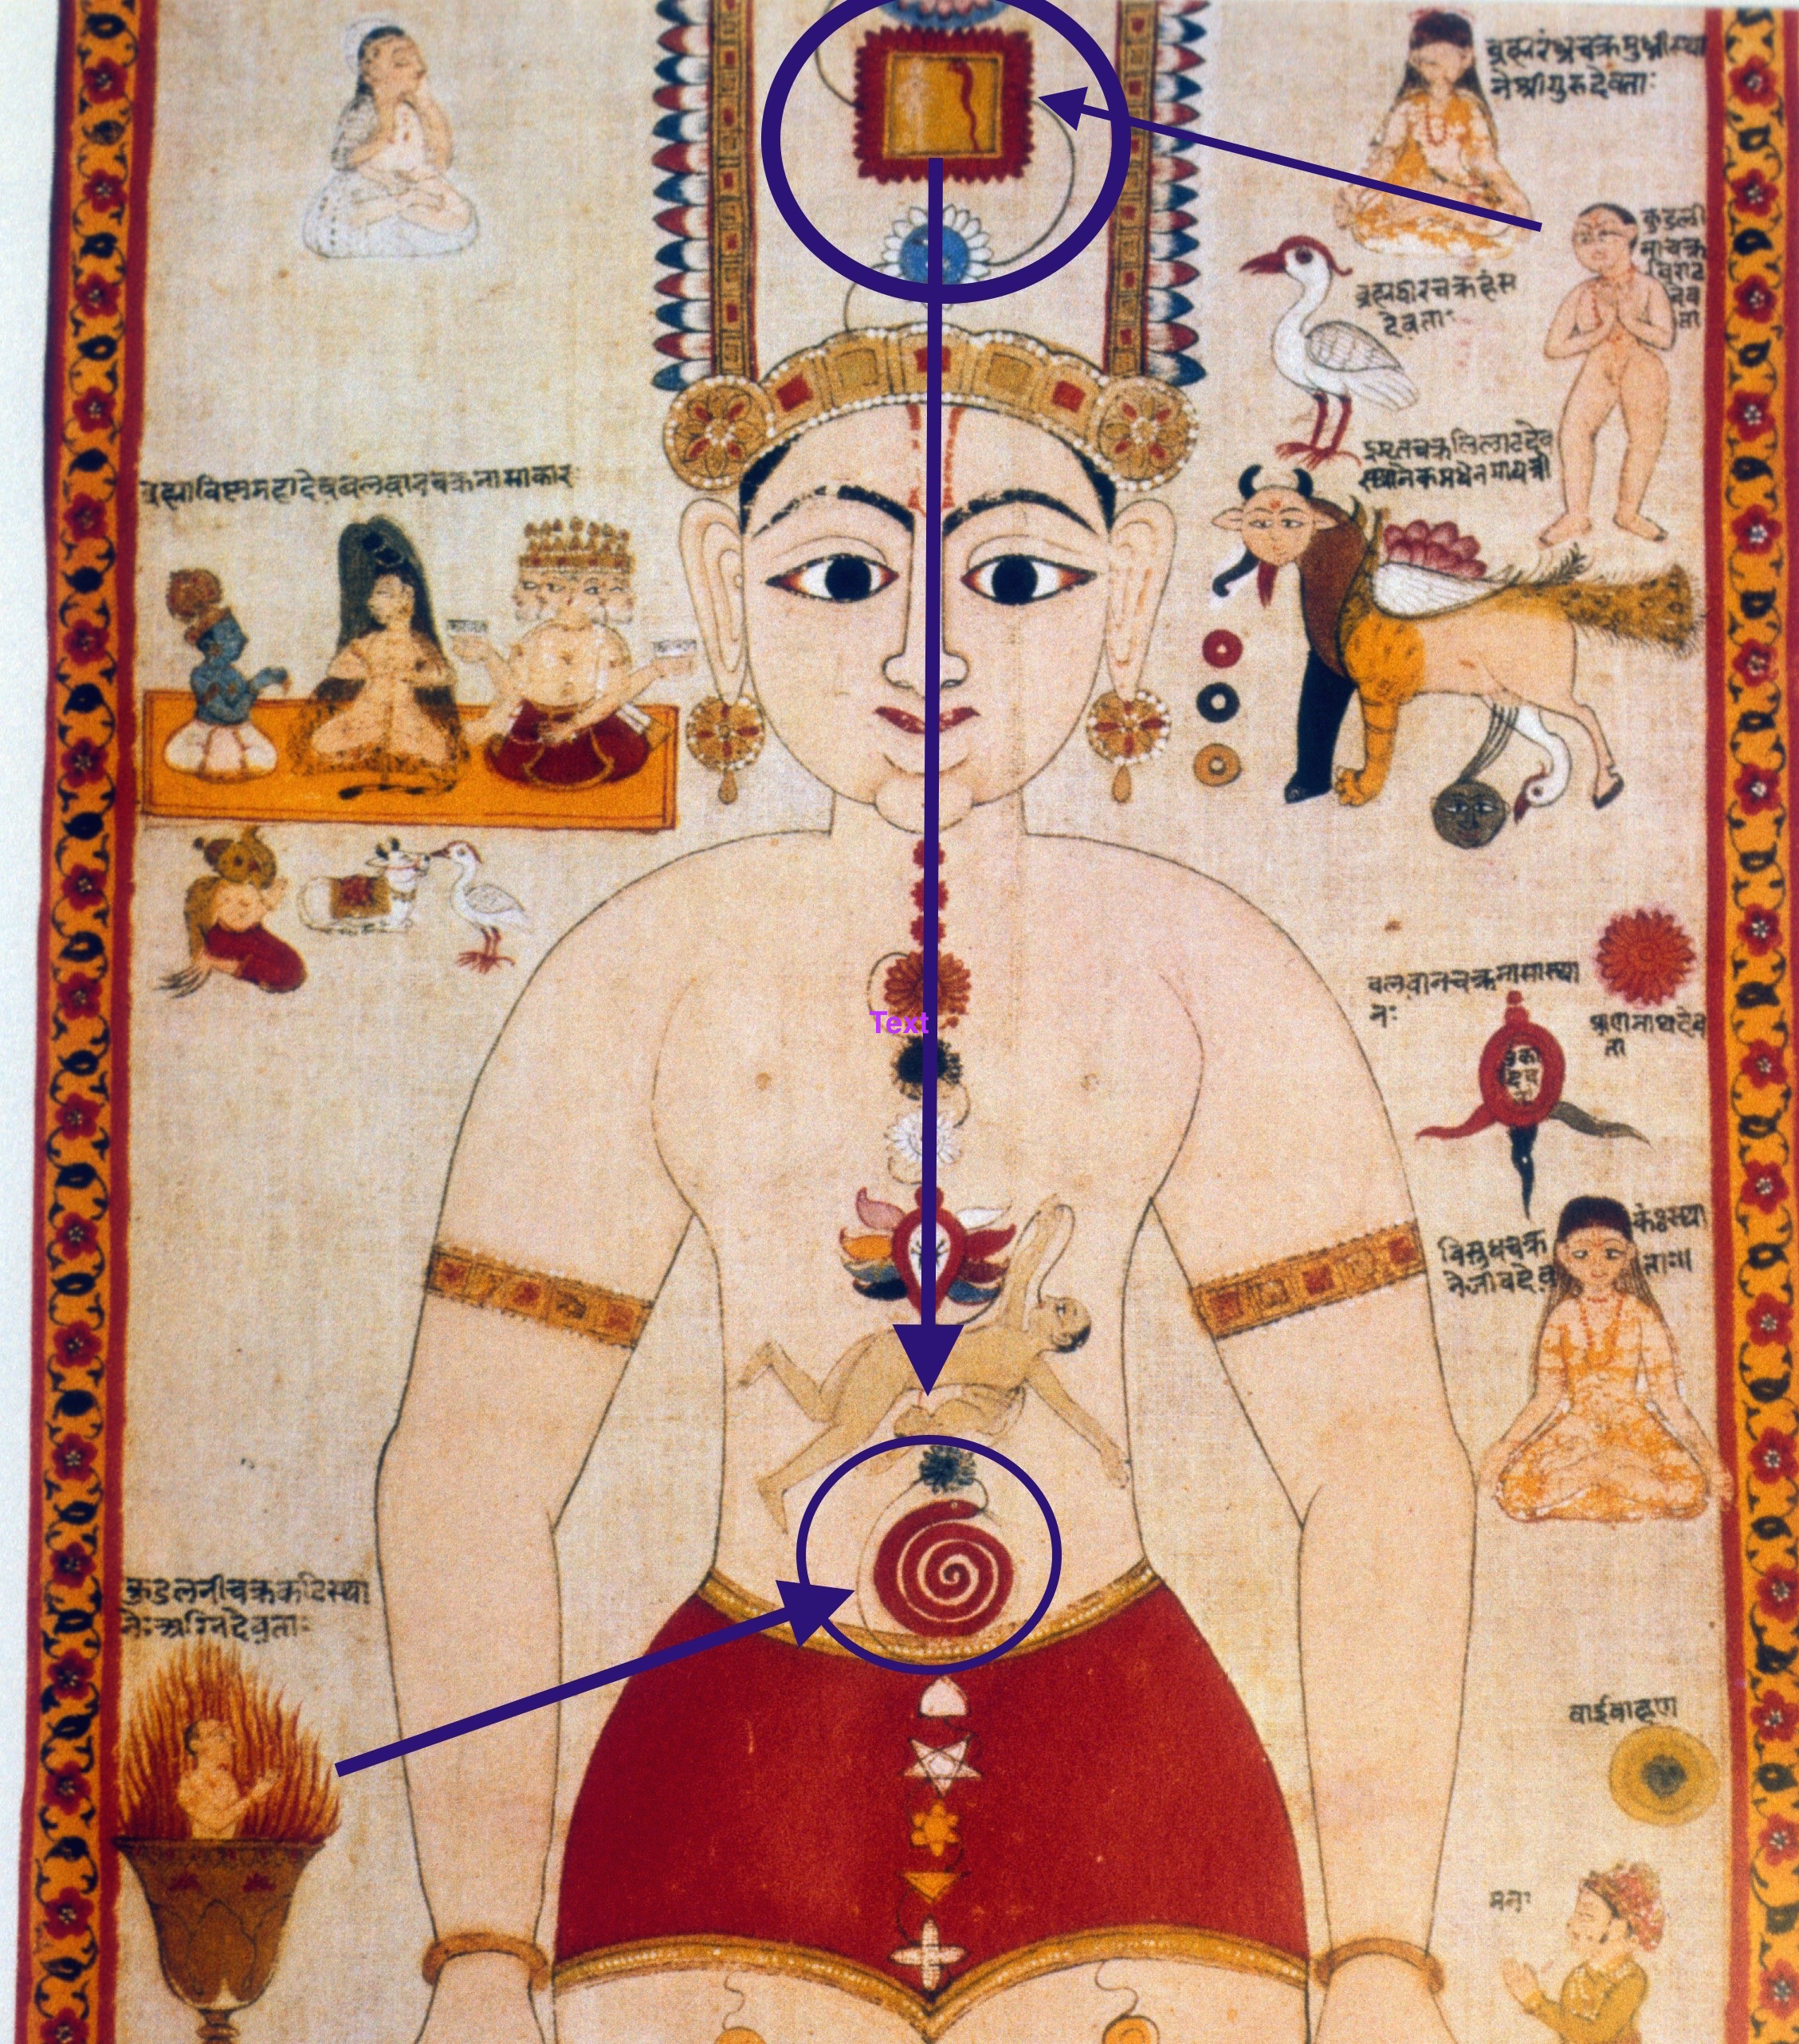 Chakra Scroll featuring the two Kundalinīs, with the upper Kuṇḍalinī descending from the top mūlādhāra chakra, indicated by the square above the head